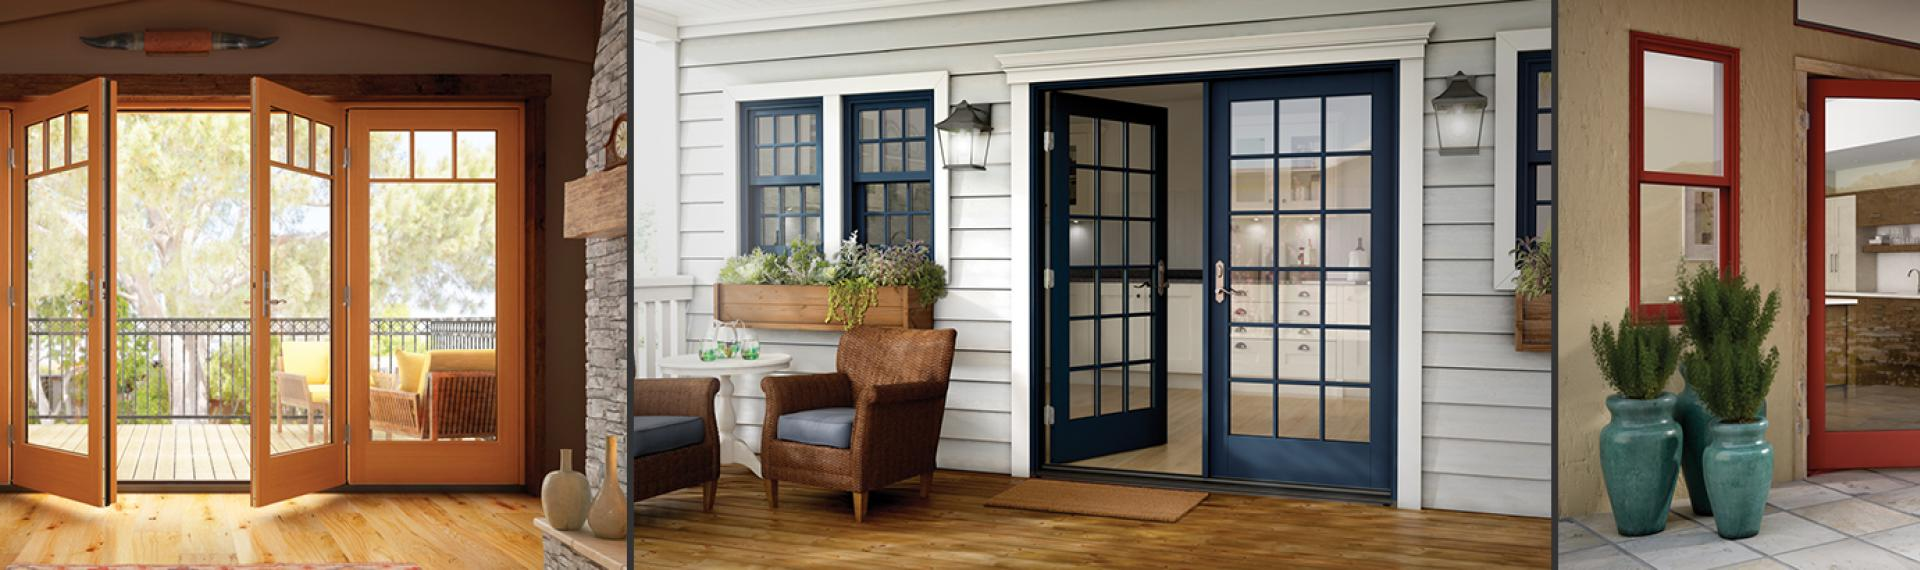 Weu0027re Pleased To Introduce Our Newest Edition In The Growing Essence  Series® Product Line. In Swing And Out Swing French Patio Doors Are Now  Available!